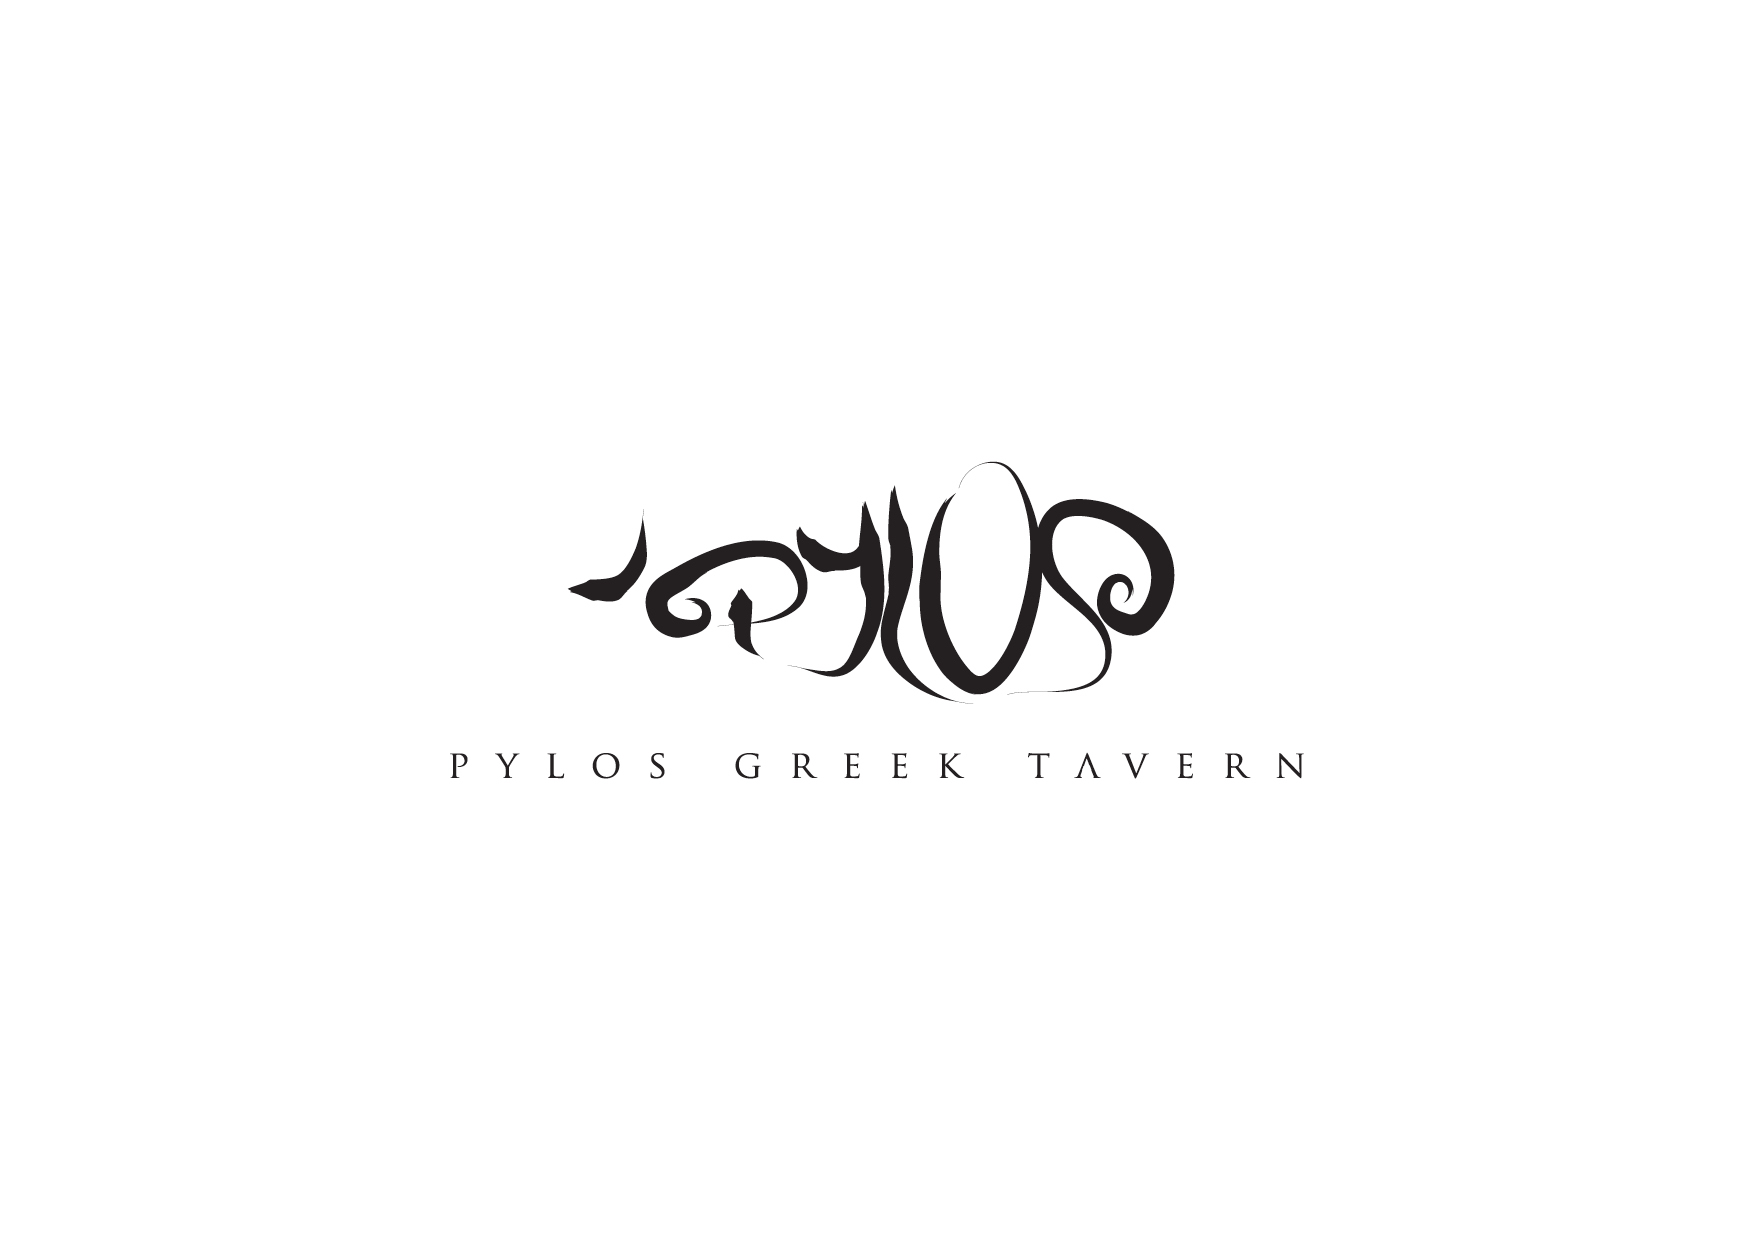 Pylos Greek Tavern Logo Design